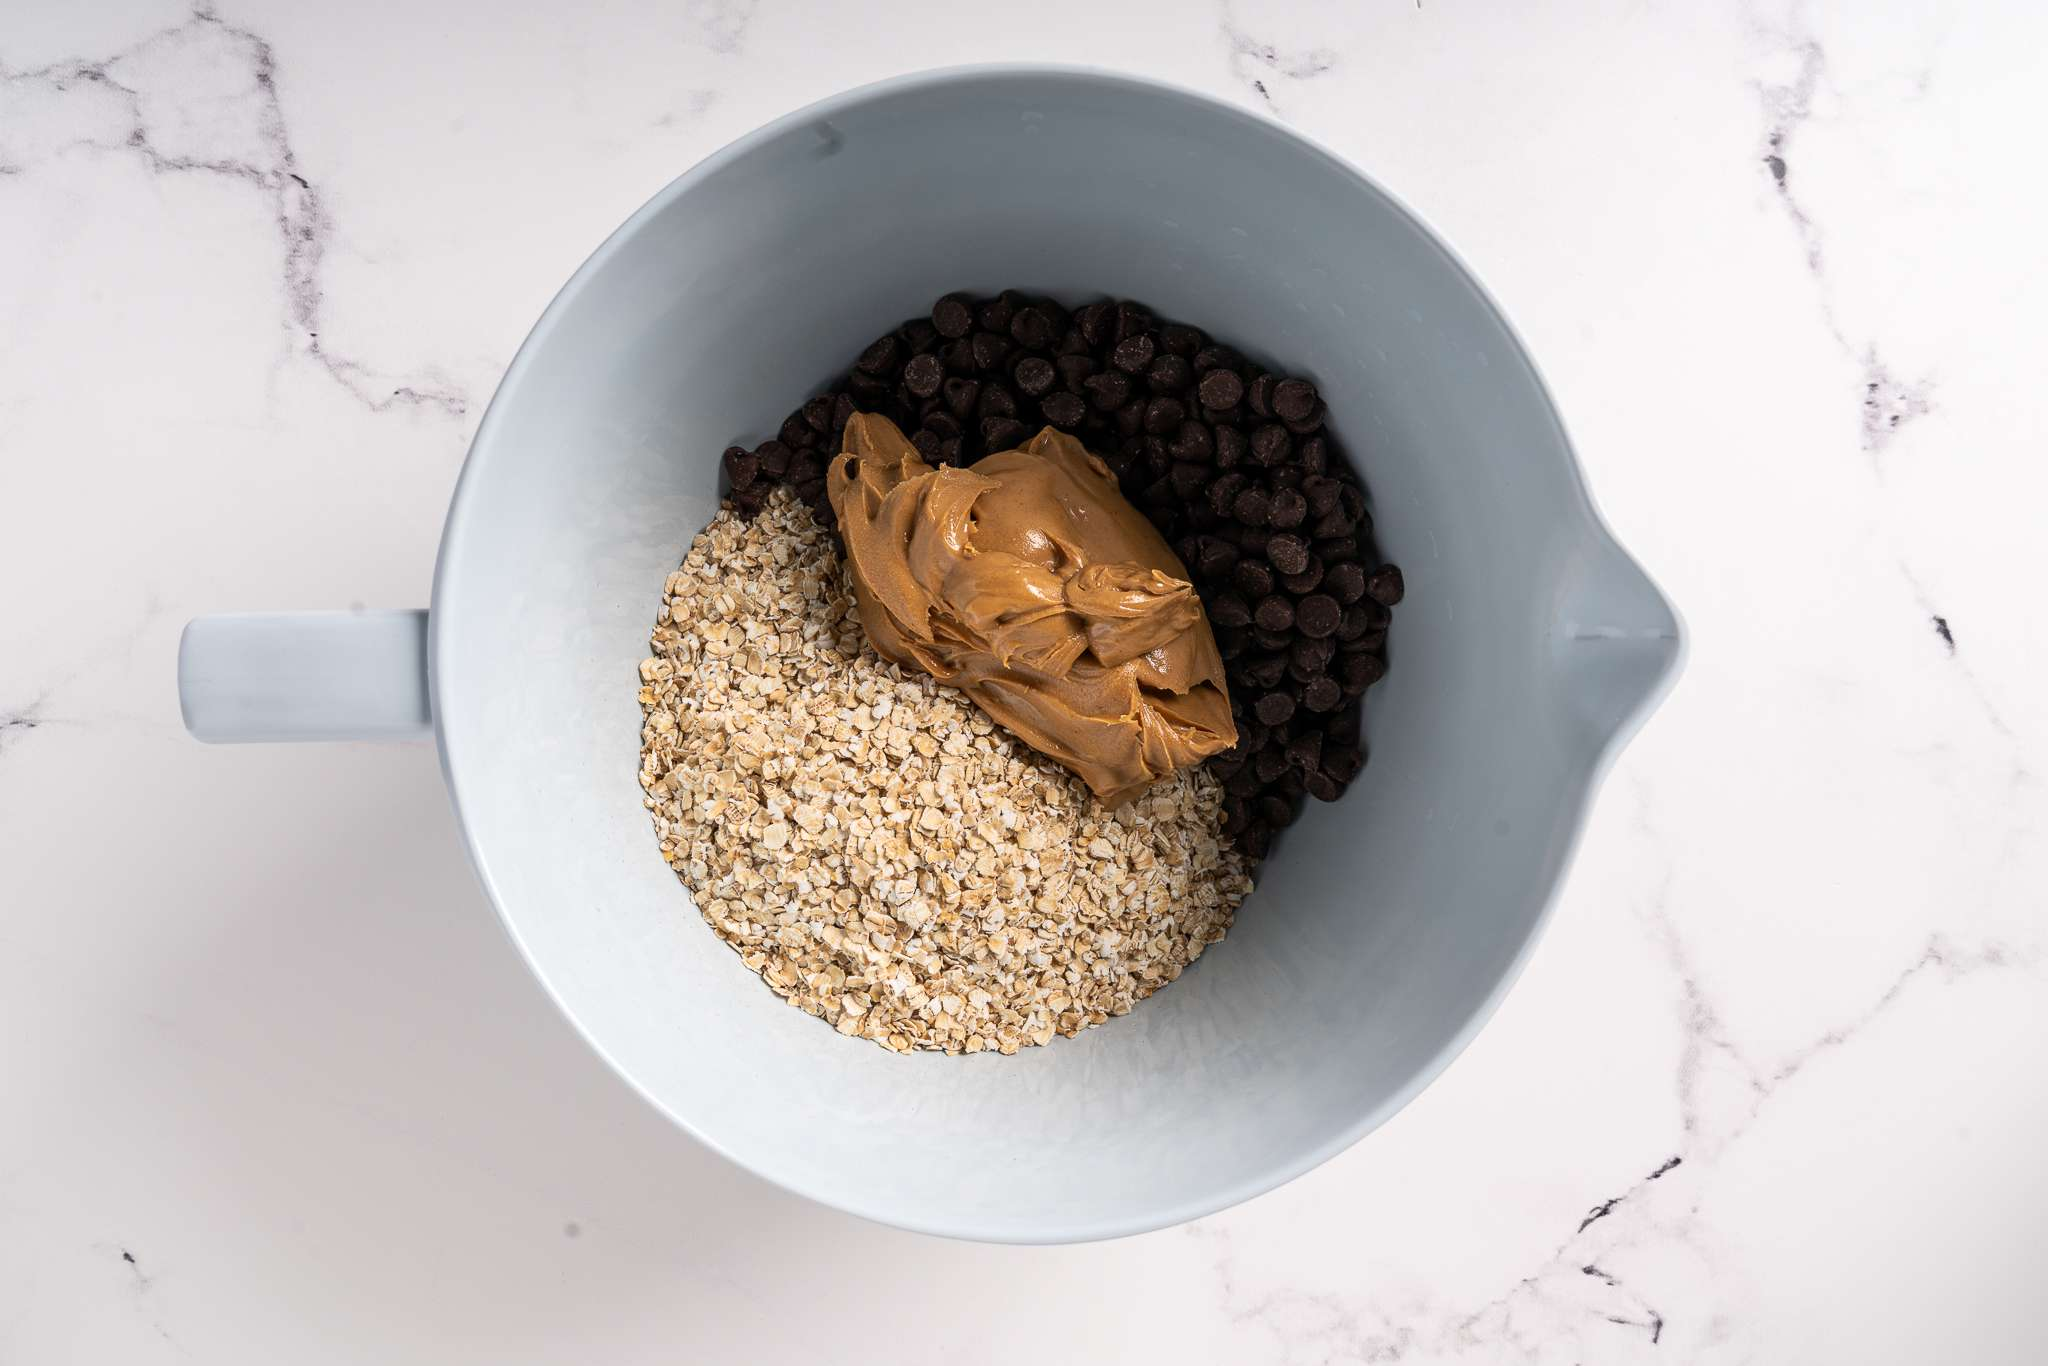 Oats, chocolate chips, vanilla, and peanut butter in a bowl